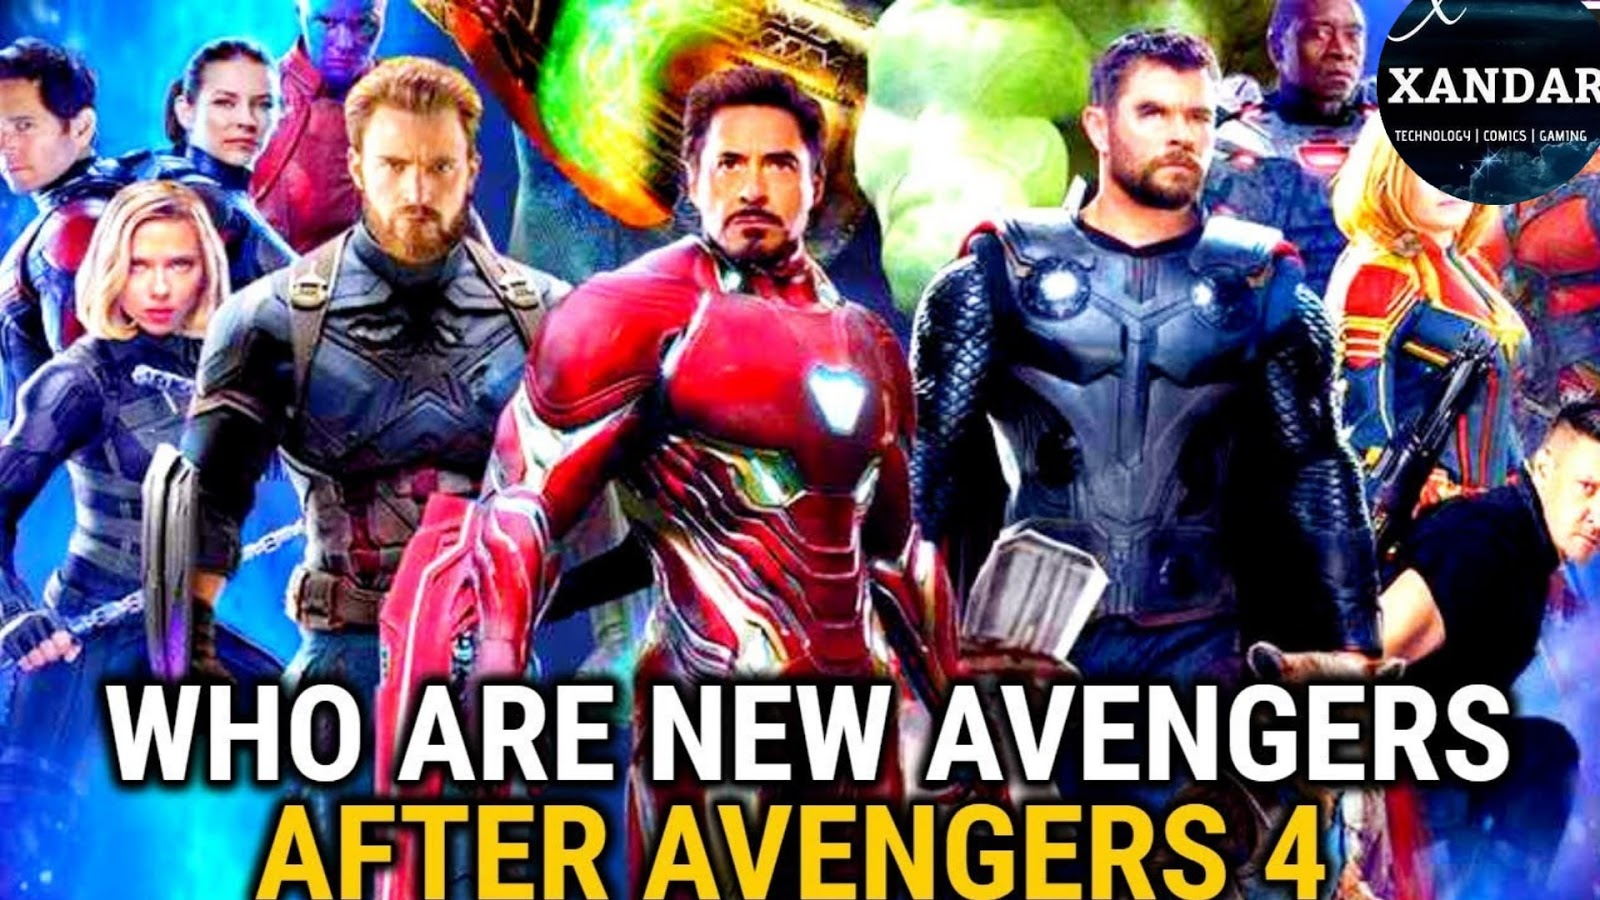 avengers,avengers 4,avengers 4 trailer,avengers infinity war,new avengers,avengers 4 teaser,new,avengers 4 teaser trailer,new avengers game,avengers 4 title,avengers 4 theory,avengers annihilation,avengers 4 leaked footage,the avengers,avengers 4 official trailer,avengers infinity war trailer,new avenger,new avengers team,avengers game,avengers 2019,avengers 4 leak,avengers 4 2019,avengers 4 news